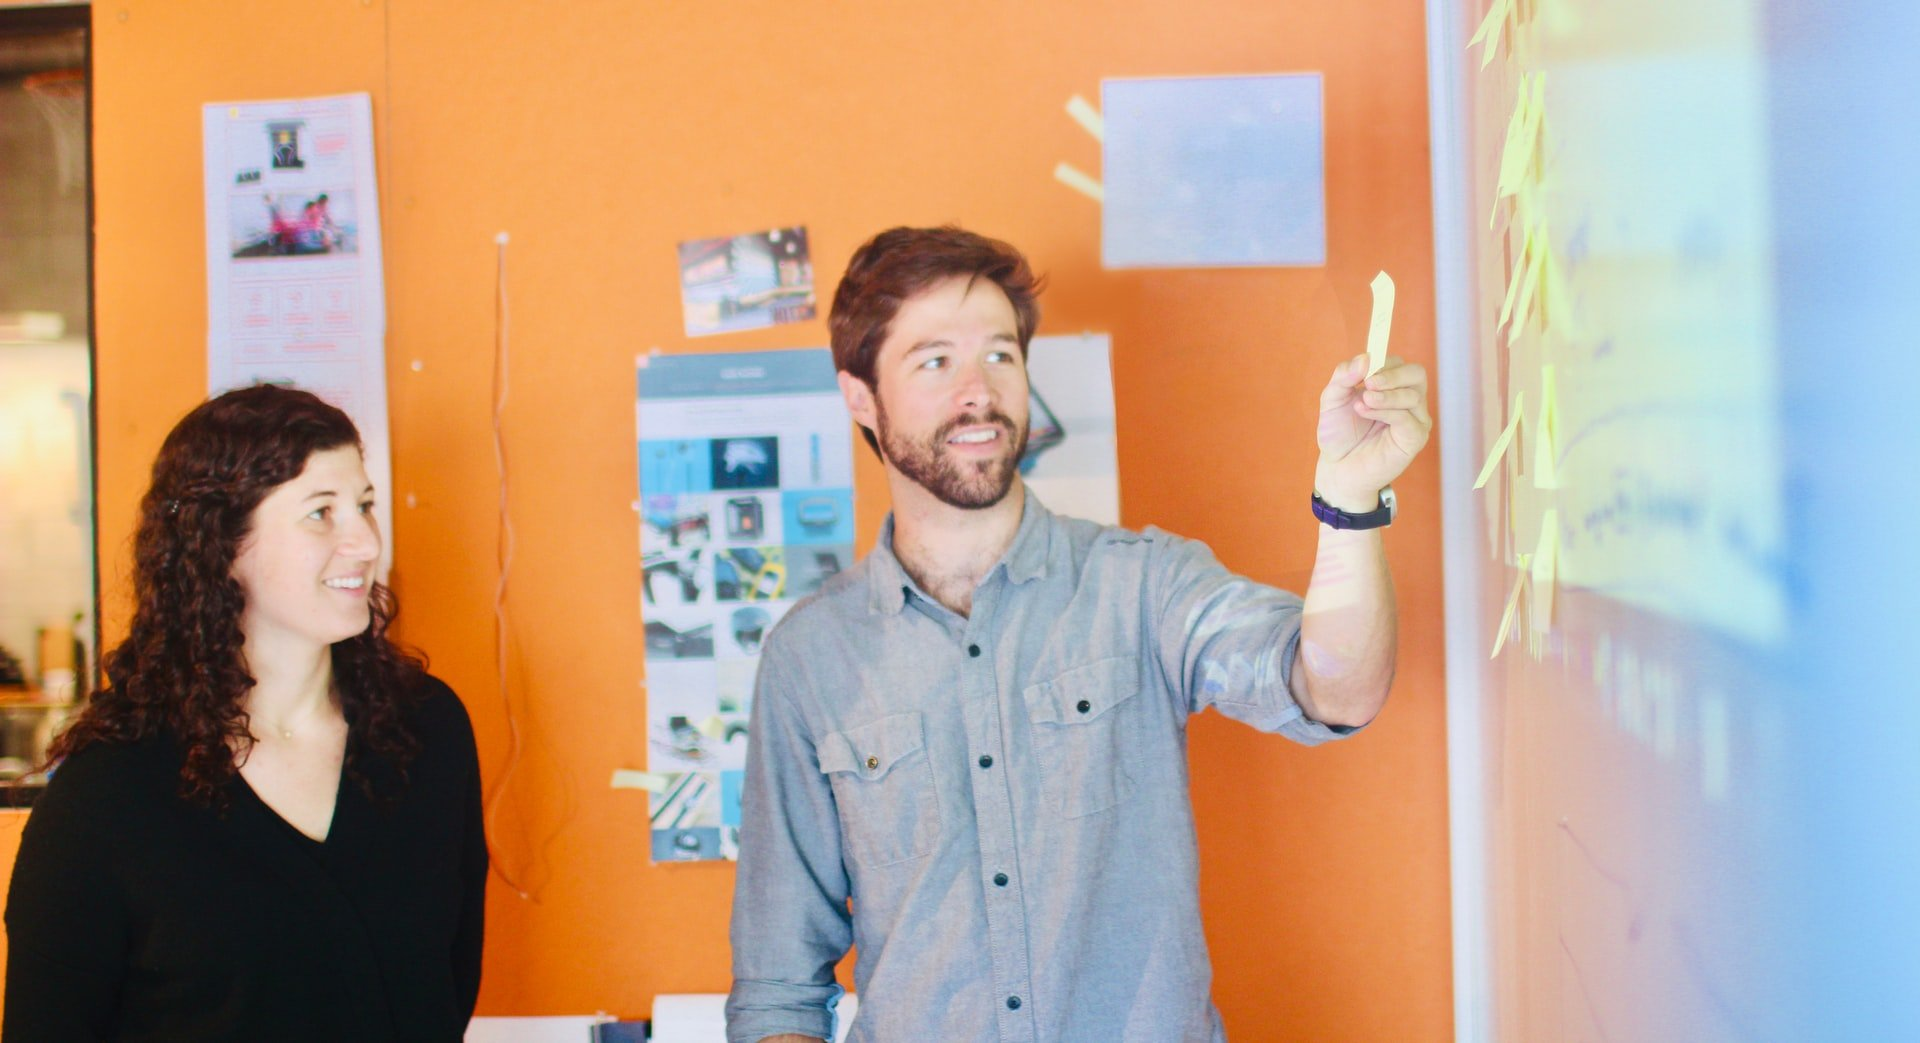 Whiteboard Makes Collaboration Simple